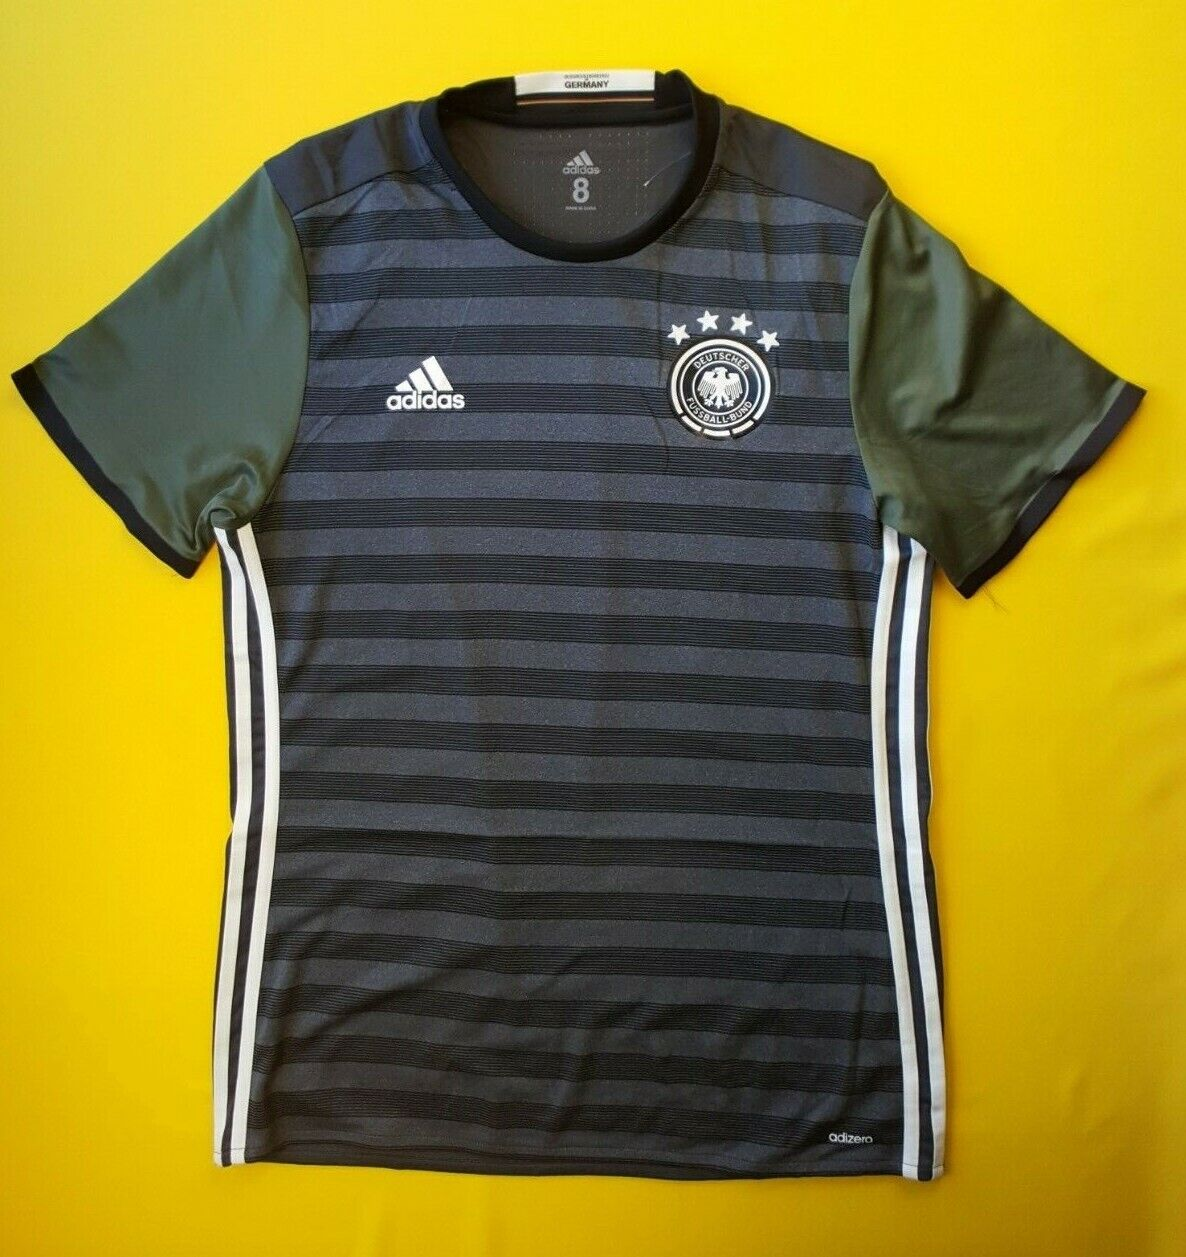 b26646986 5+ 5 Germany DBF authentic soccer jersey 2016 shirt BQ7492 Adidas football  ig93